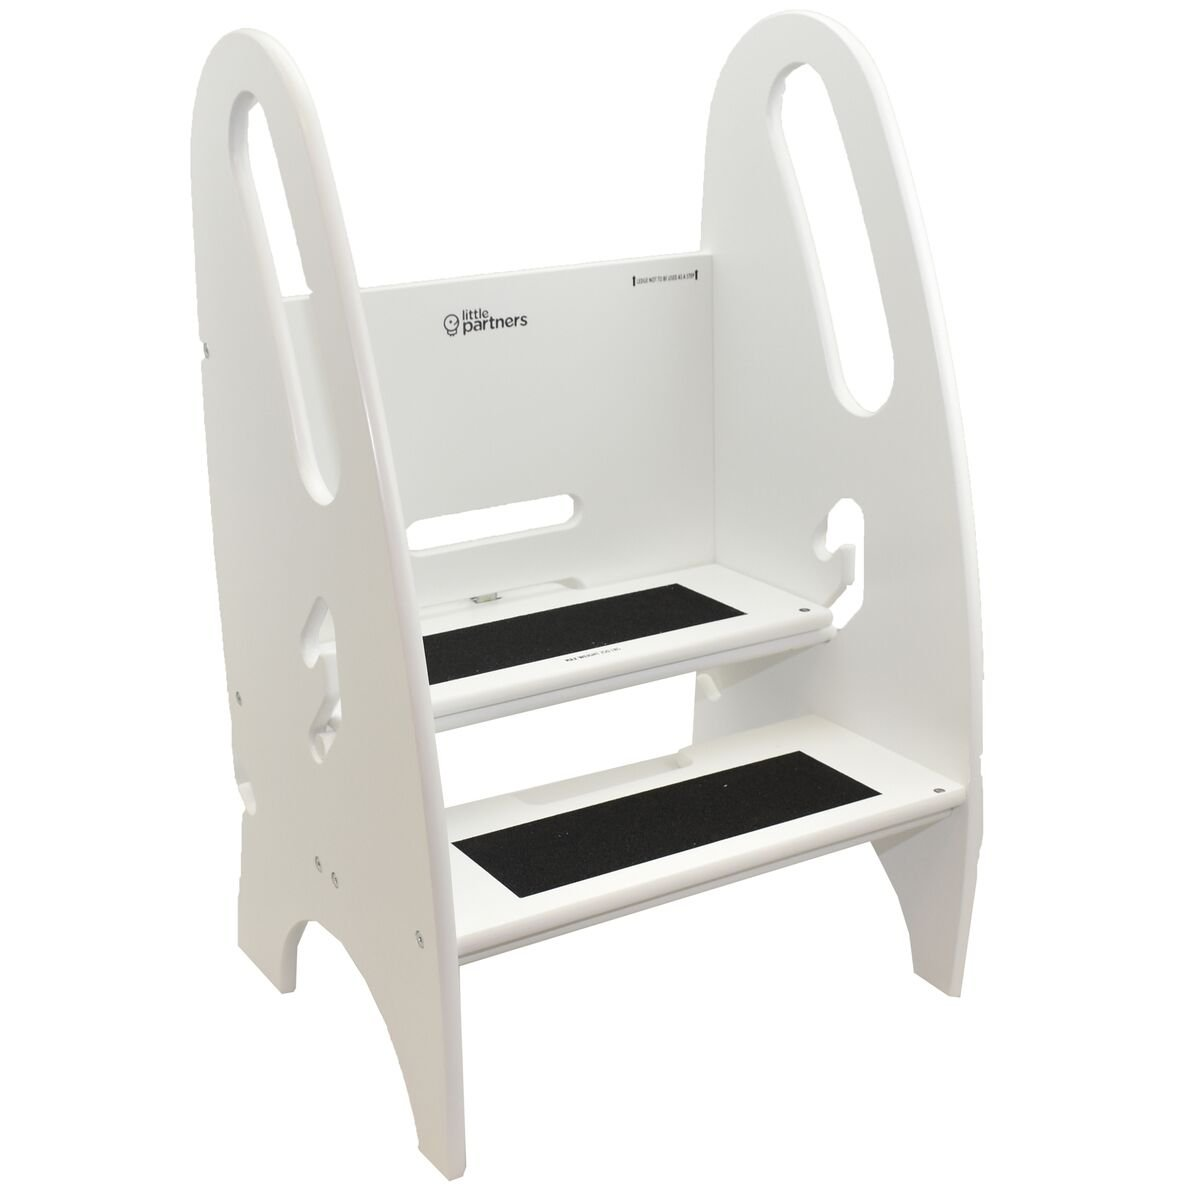 The Growing Step Stool by Little Partners (Soft White) – Adjustable Height Nursery, Kitchen or Bathroom Kids Footstool – Wooden Non-Tip Design for Both Toddlers & Adults (Supports Up To 250lbs)